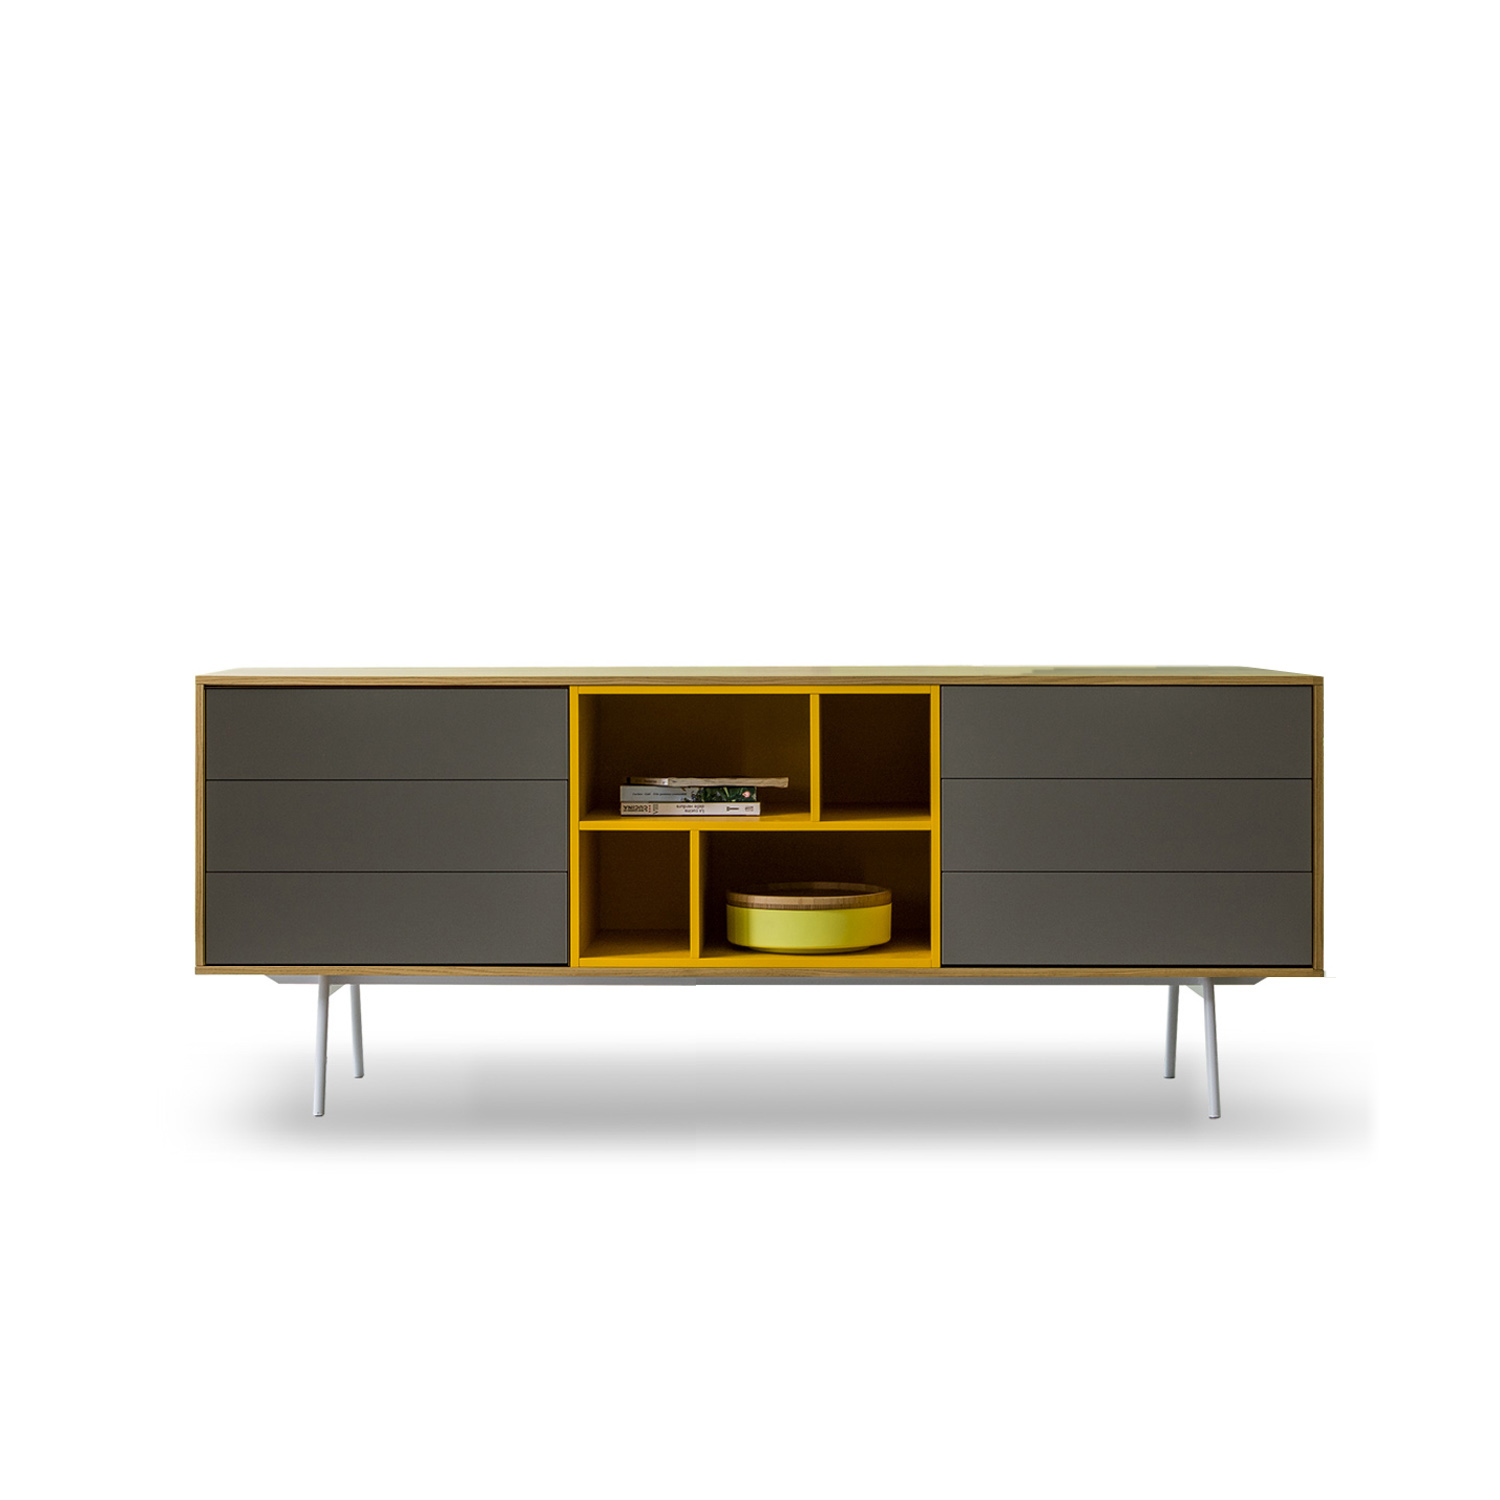 italian-contemporary-furniture-light-open-sideboard-for-dining-and-living-room-by-dallagnese.jpg